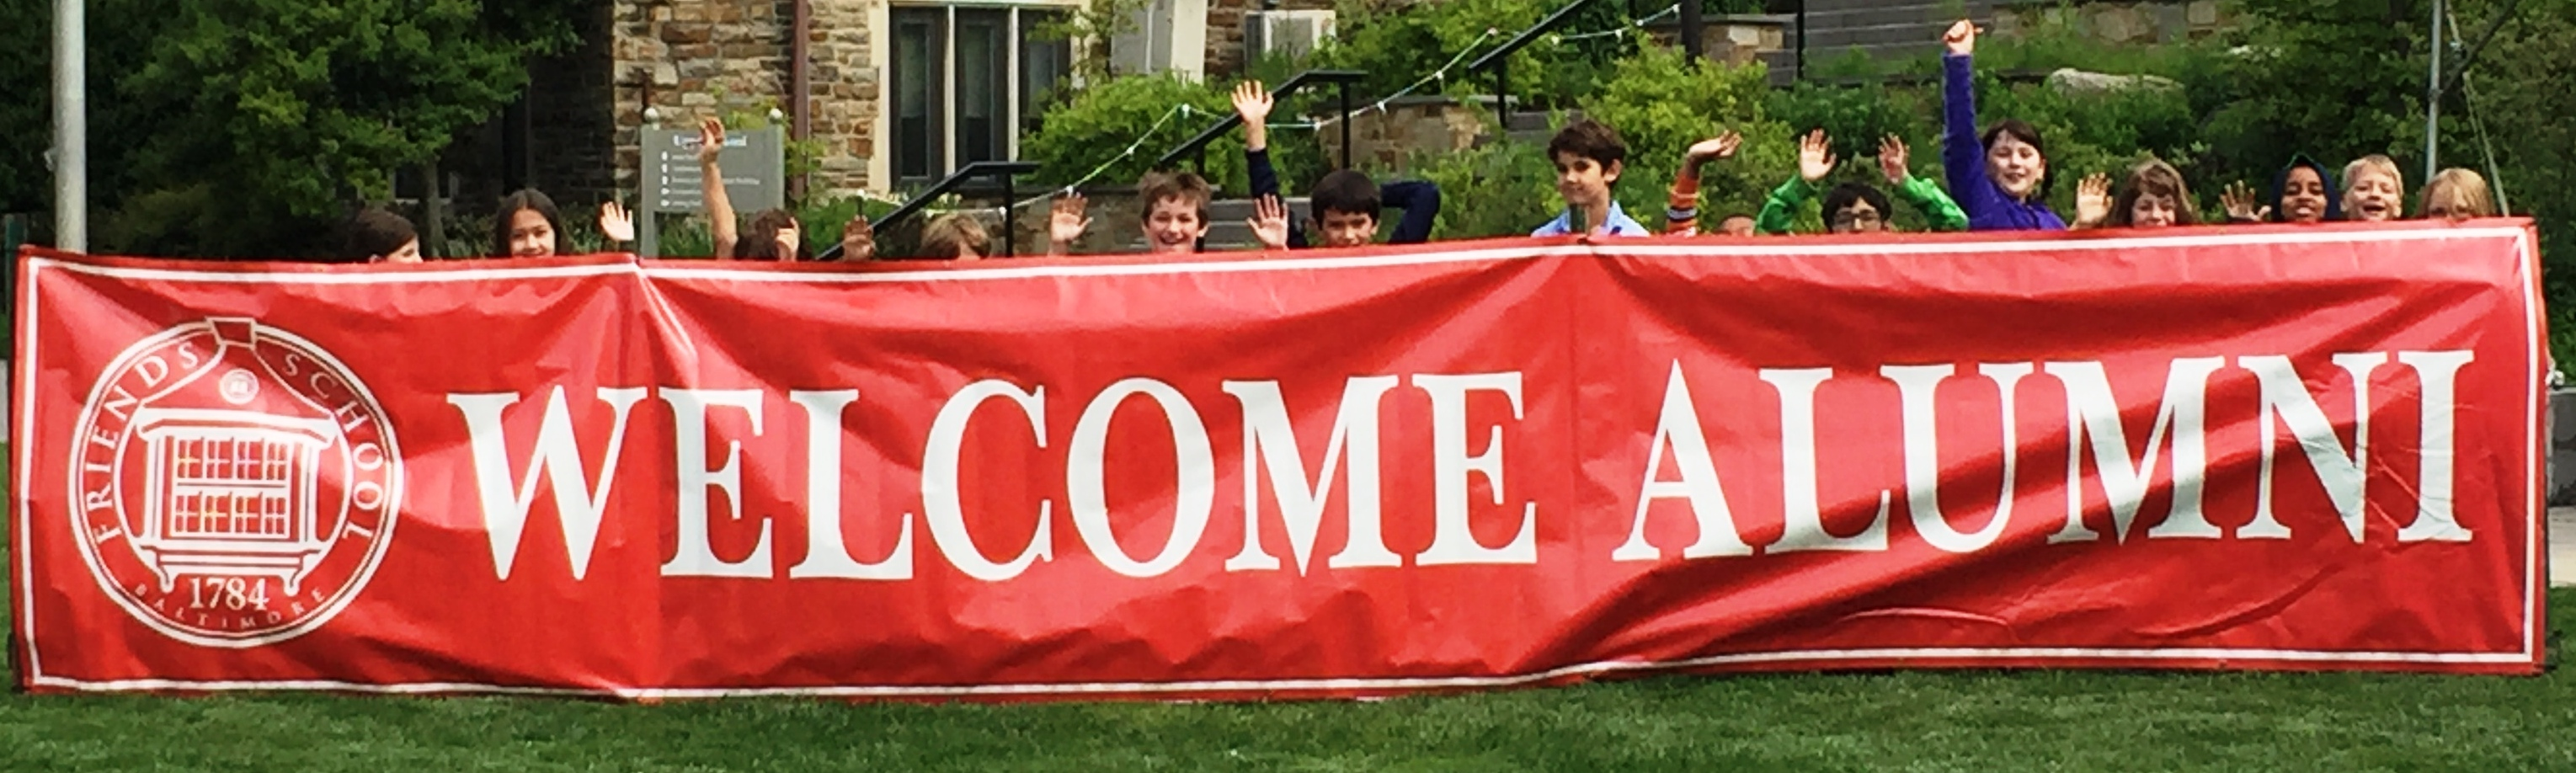 Welcome Alumni banner with kids